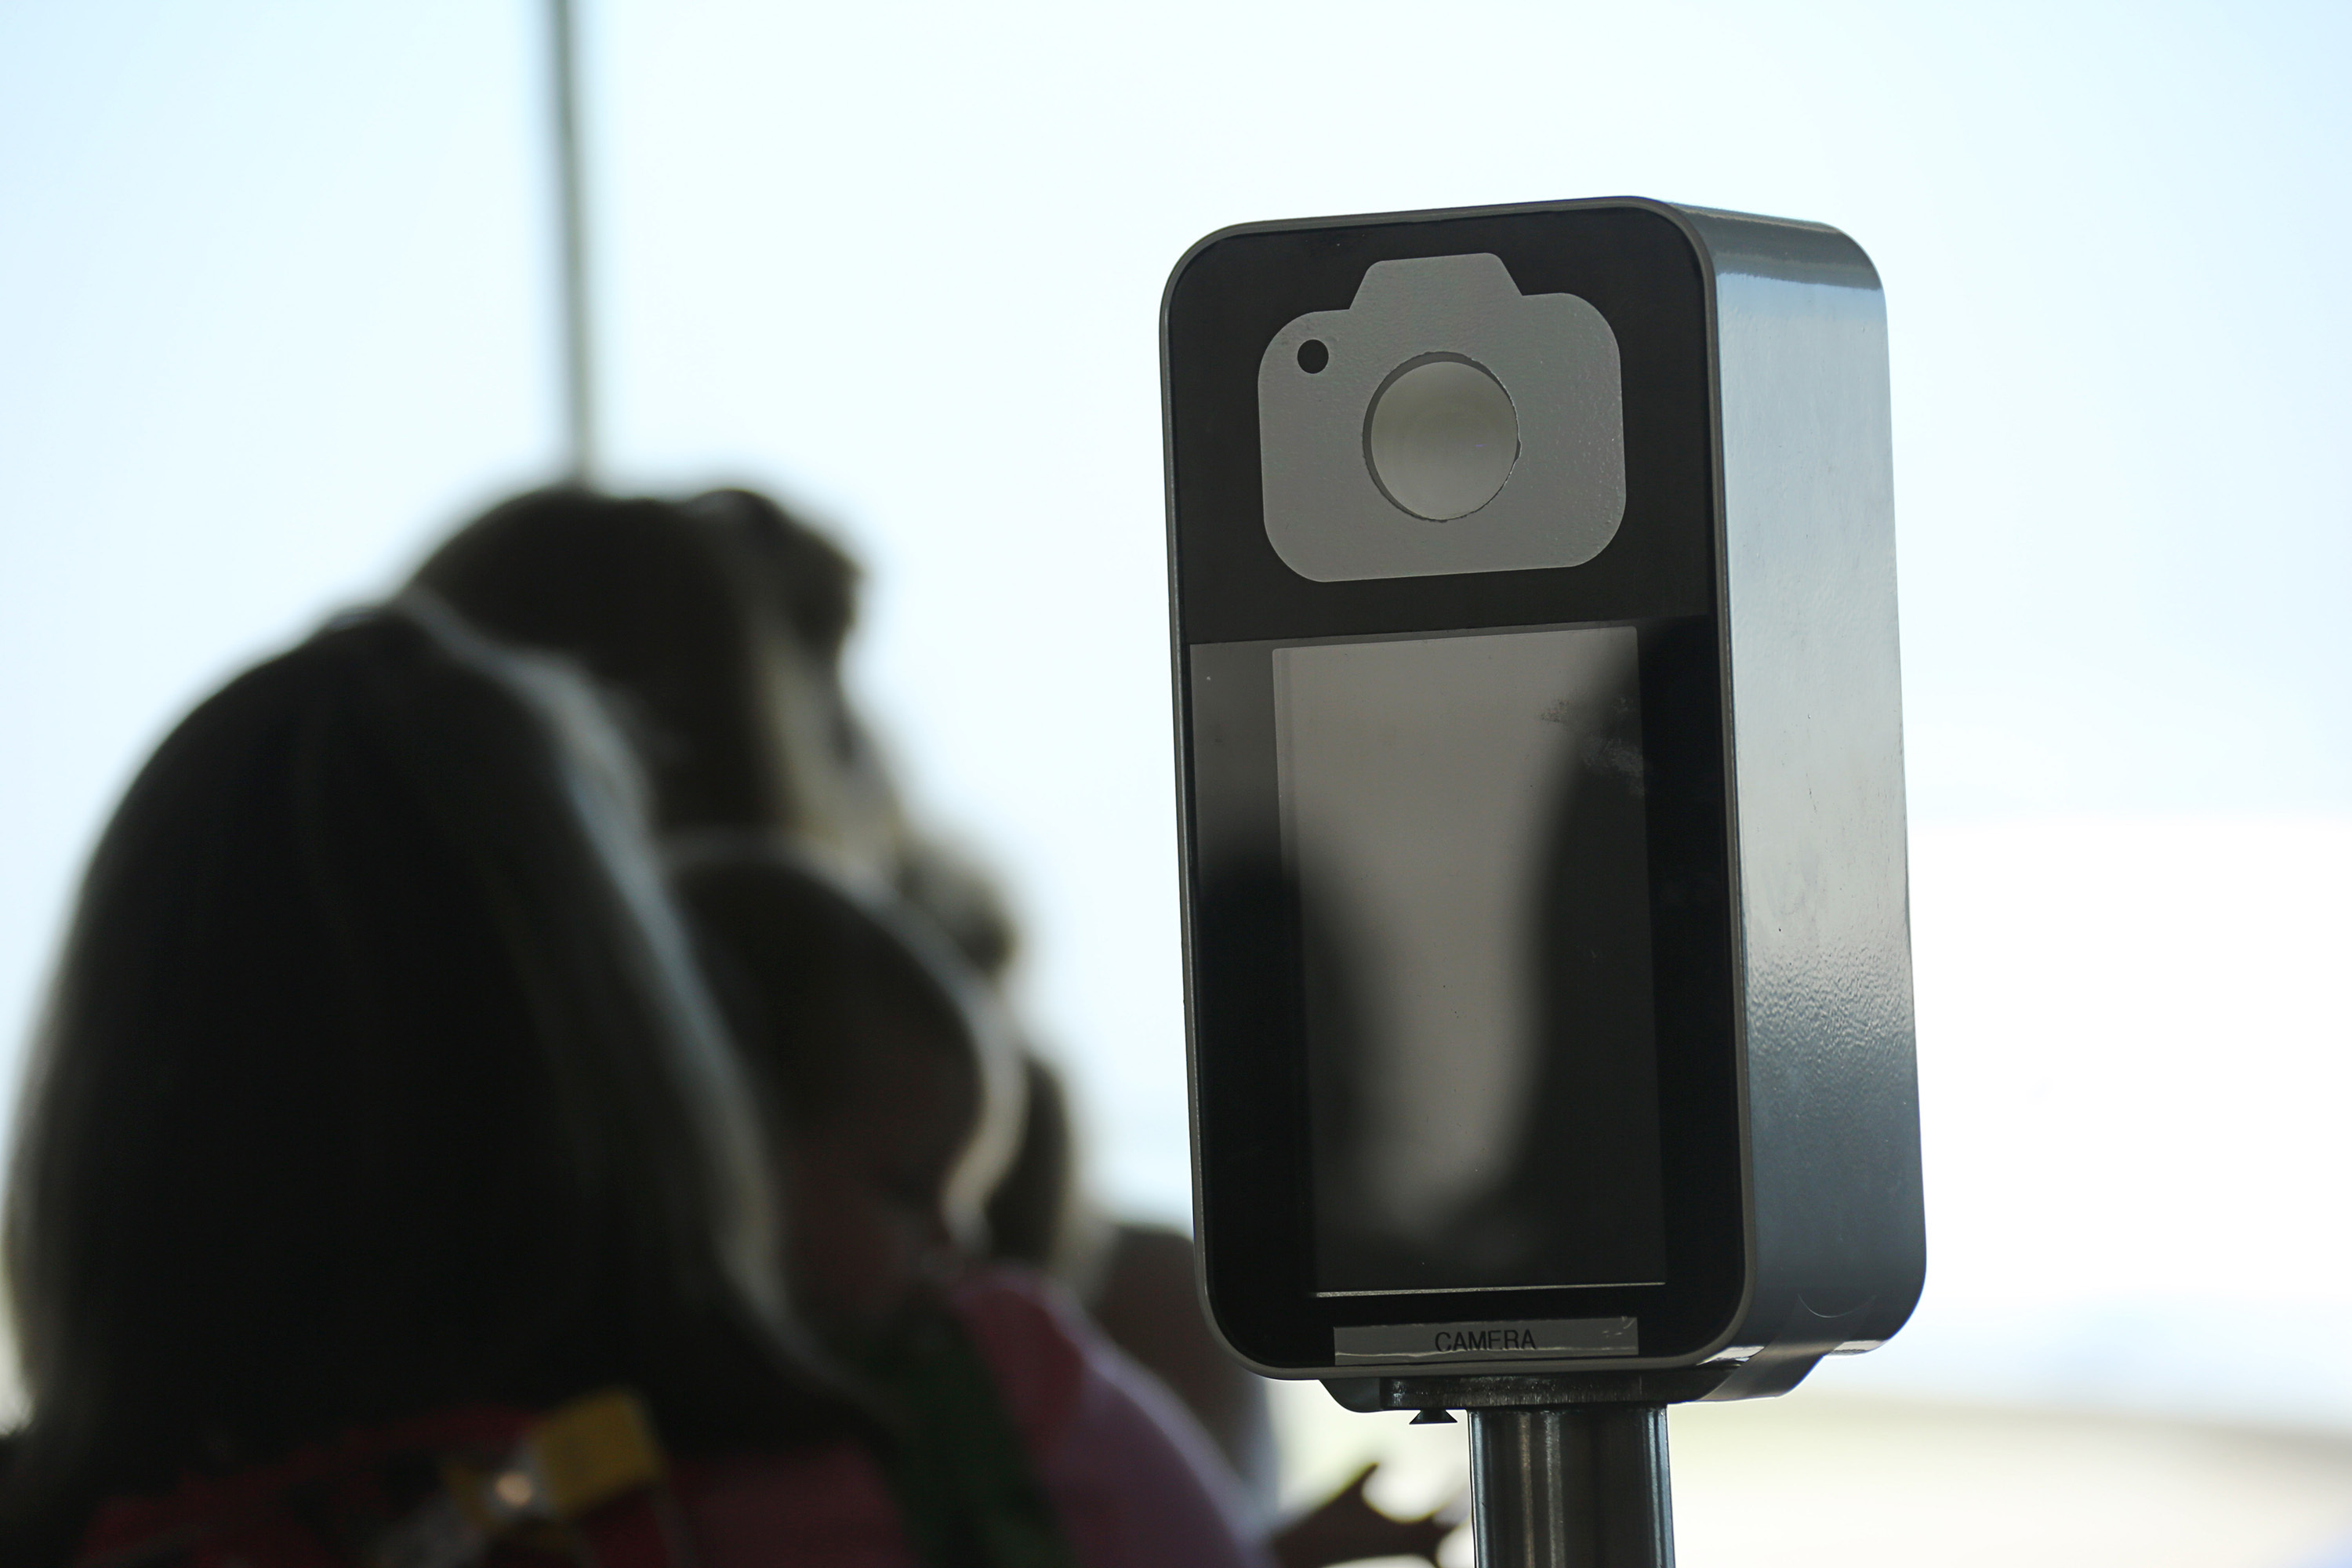 The camera in a biometric facial recognition screening device at a British Airways international gate